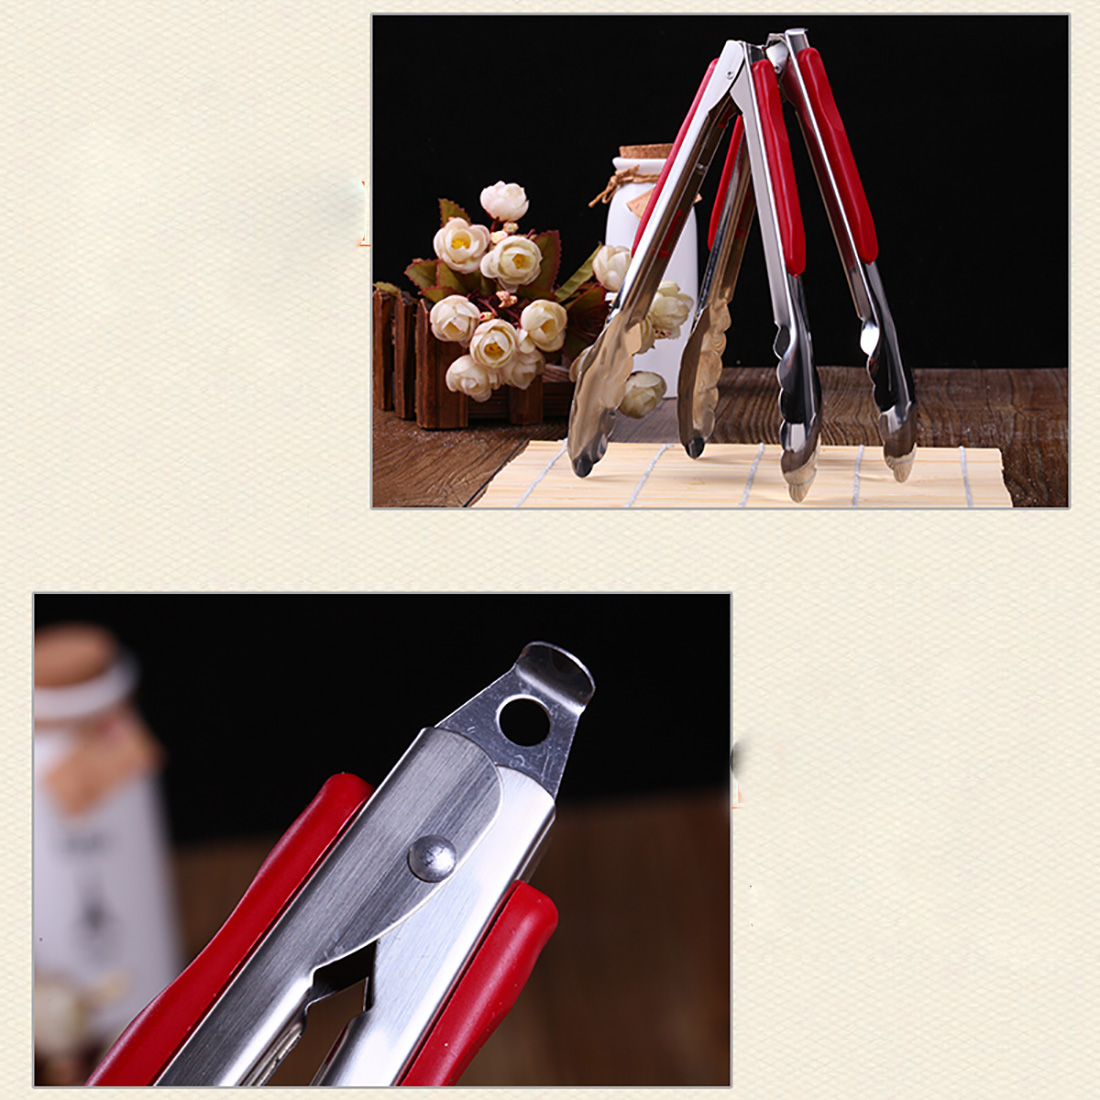 Useful High Quality 9-Inch Stainless Steel and Red ABS Locking Tongs for BBQ ice cupcakes and food